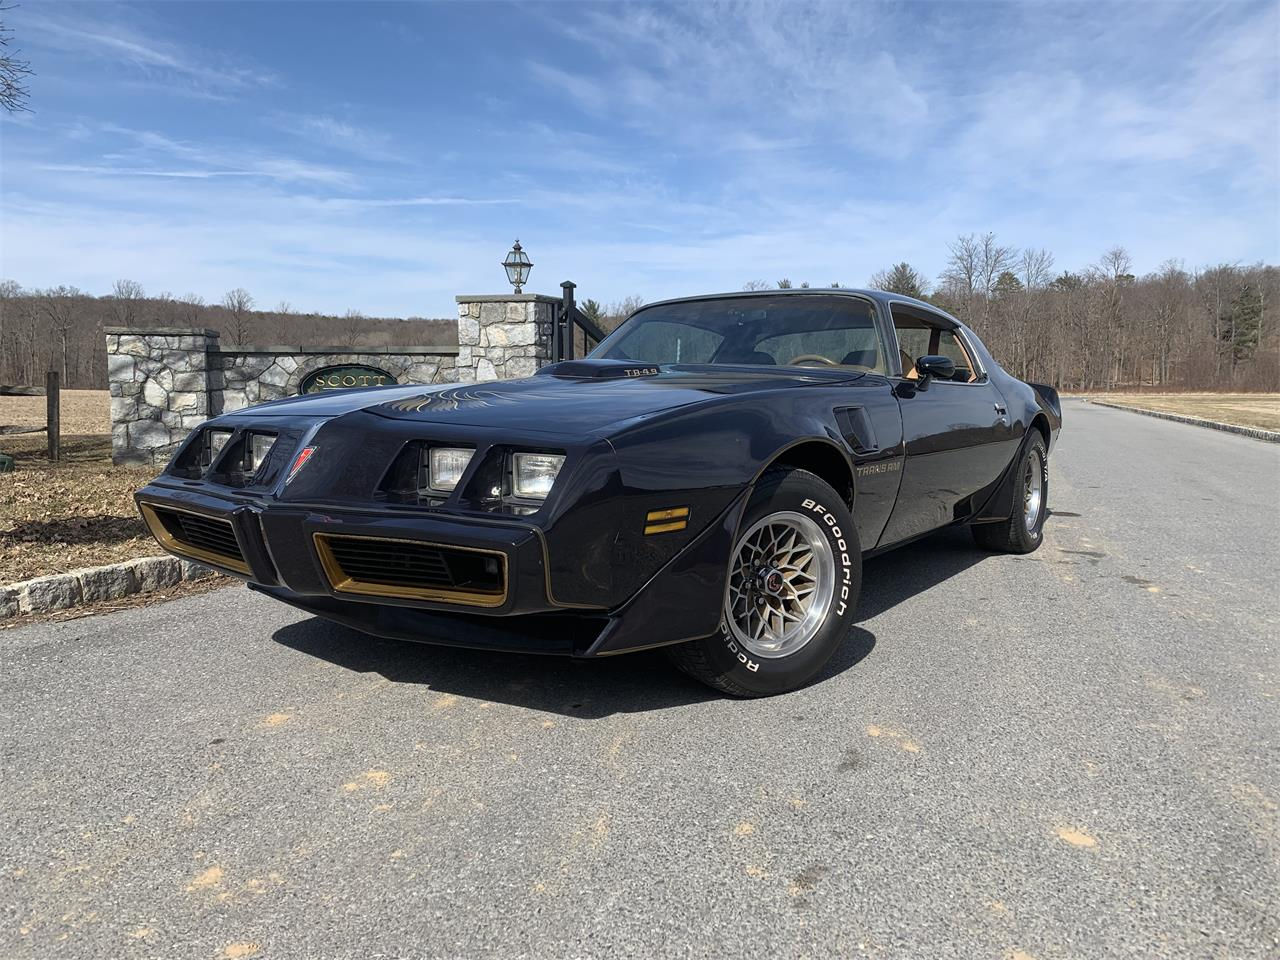 Pontiac Firebird Trans Am V8 video disponible prix tout compris 1980